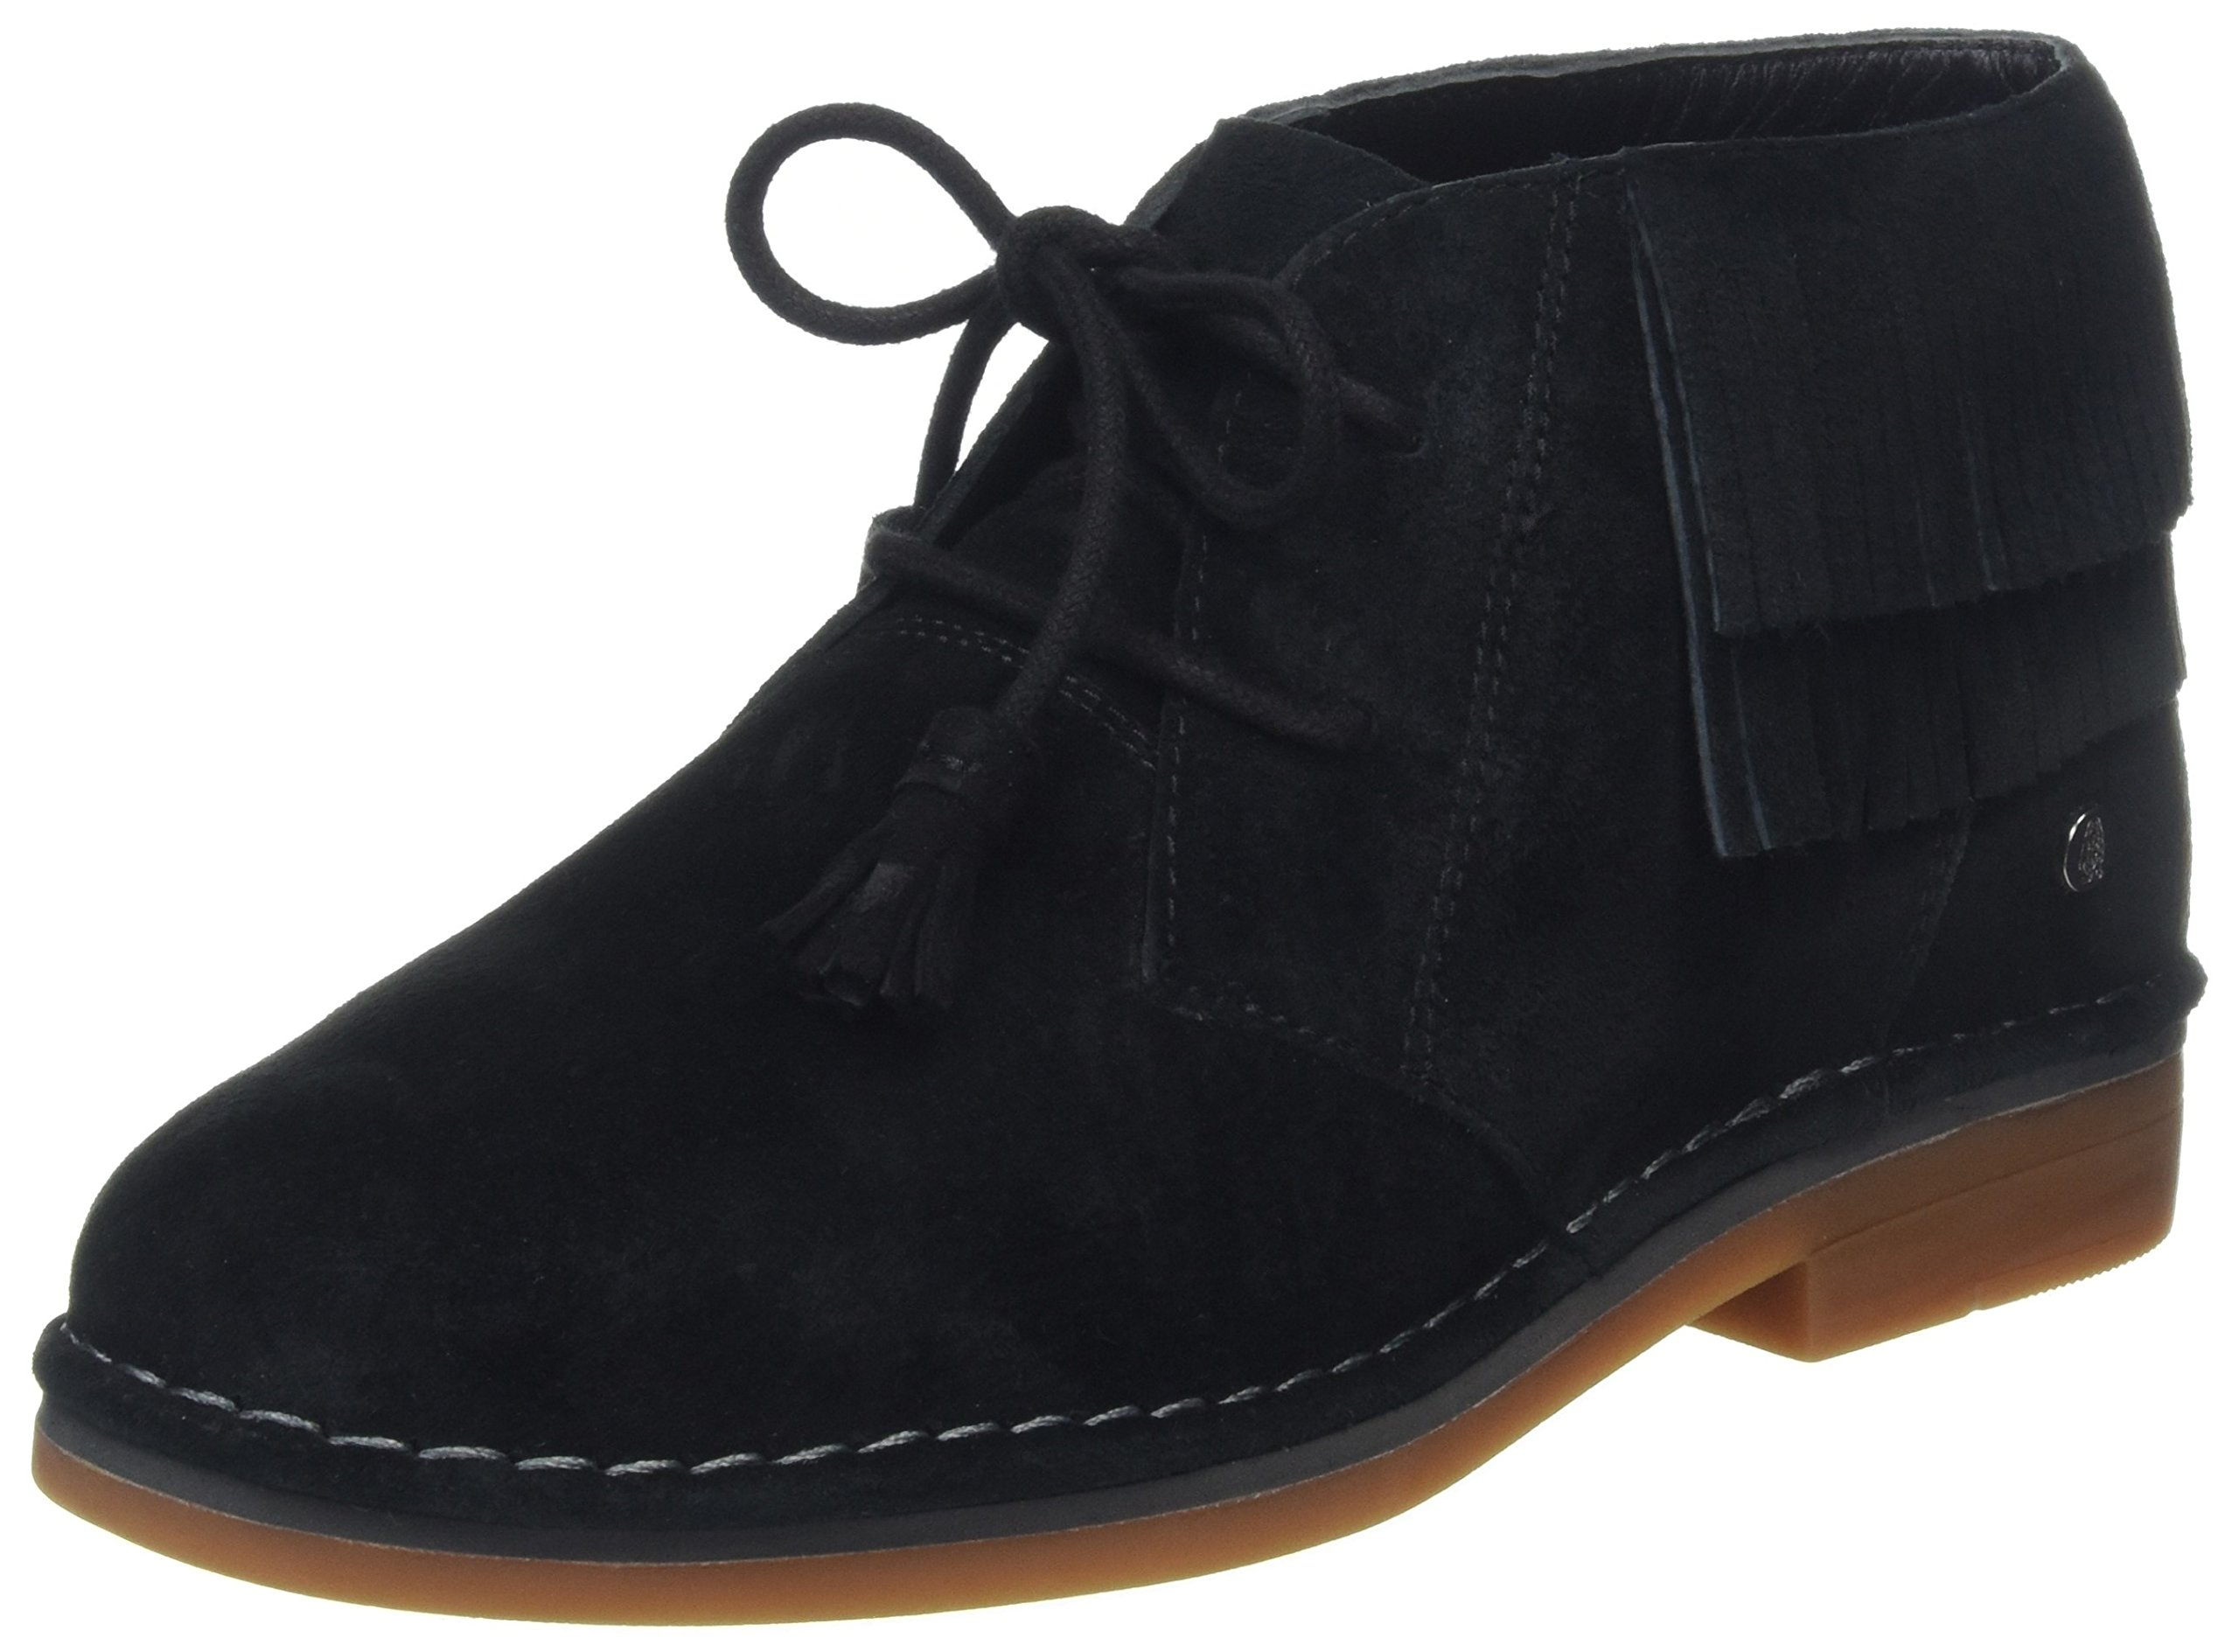 Cala Indiennes Hush Bottines Eu CatelynBottesamp; Puppies FemmeNoirblack38 7gyf6b